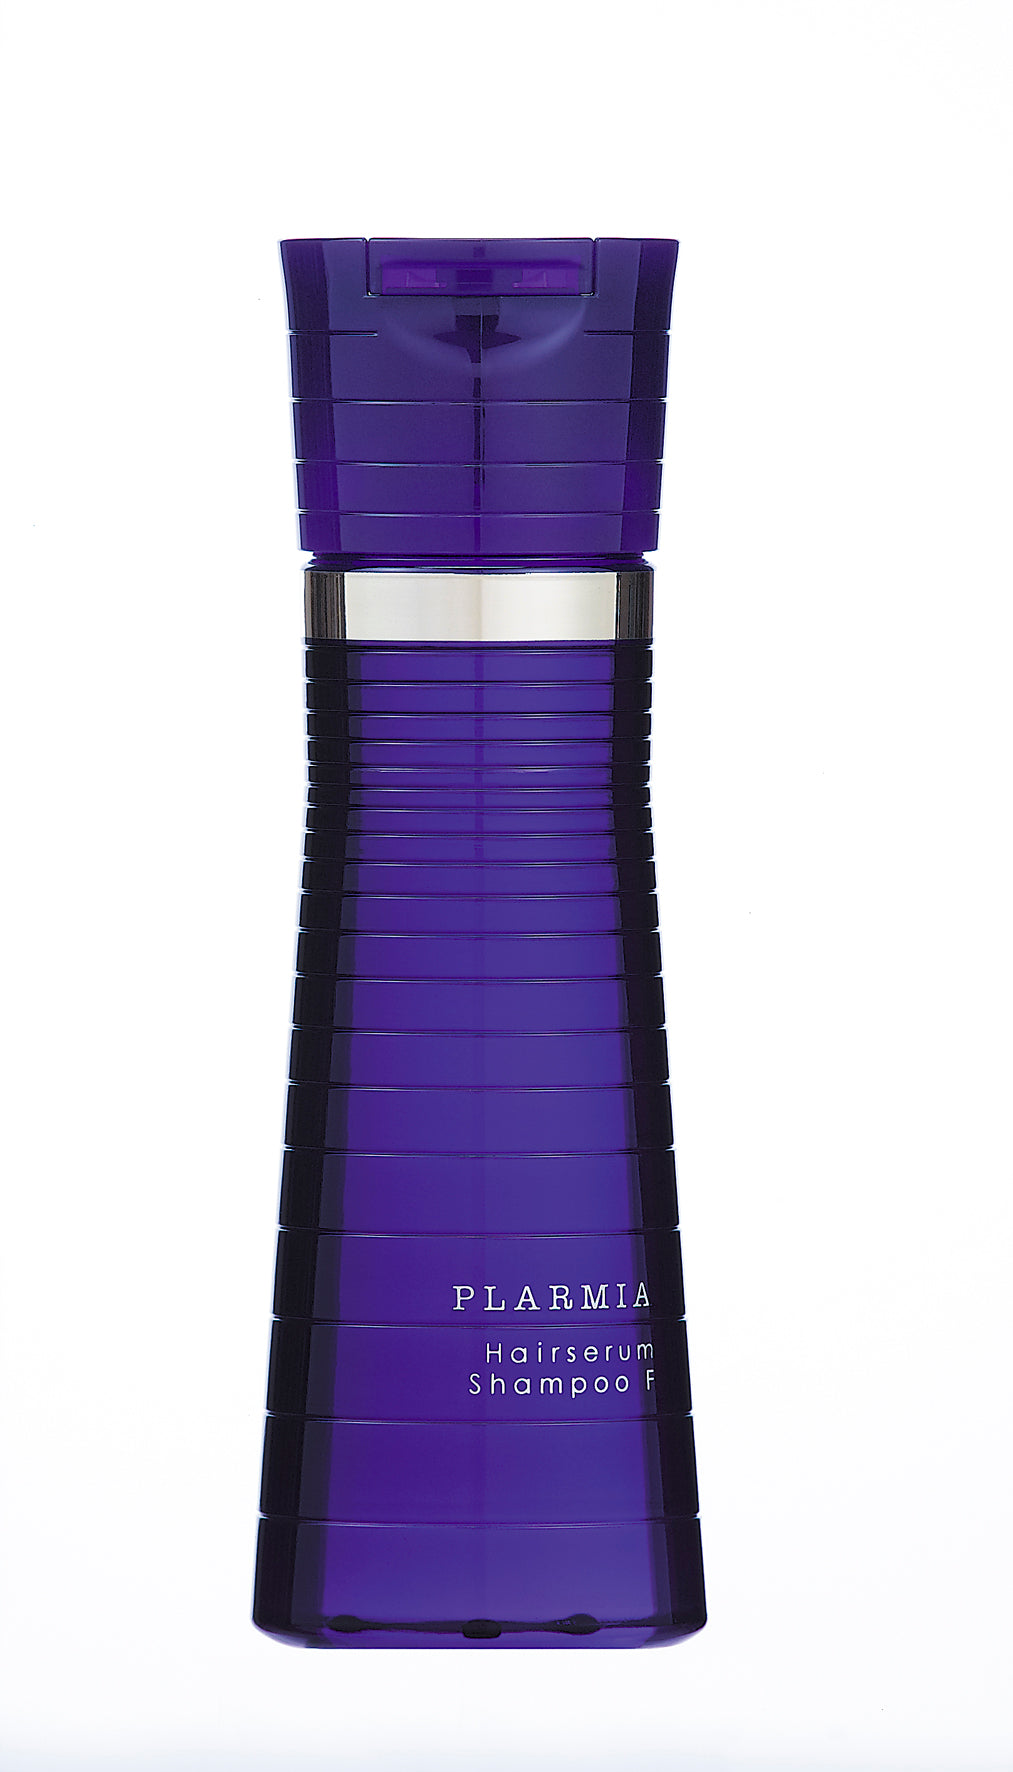 PLARMIA HAIRSERUM SHAMPOO F 200ML